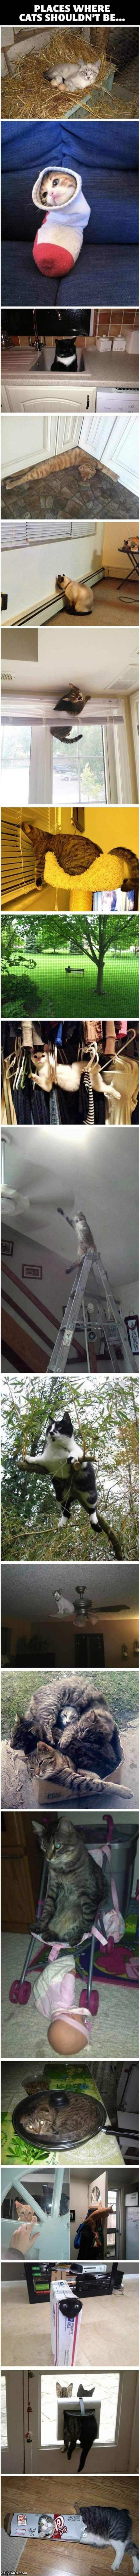 cats_in_weird_places_funny_picture